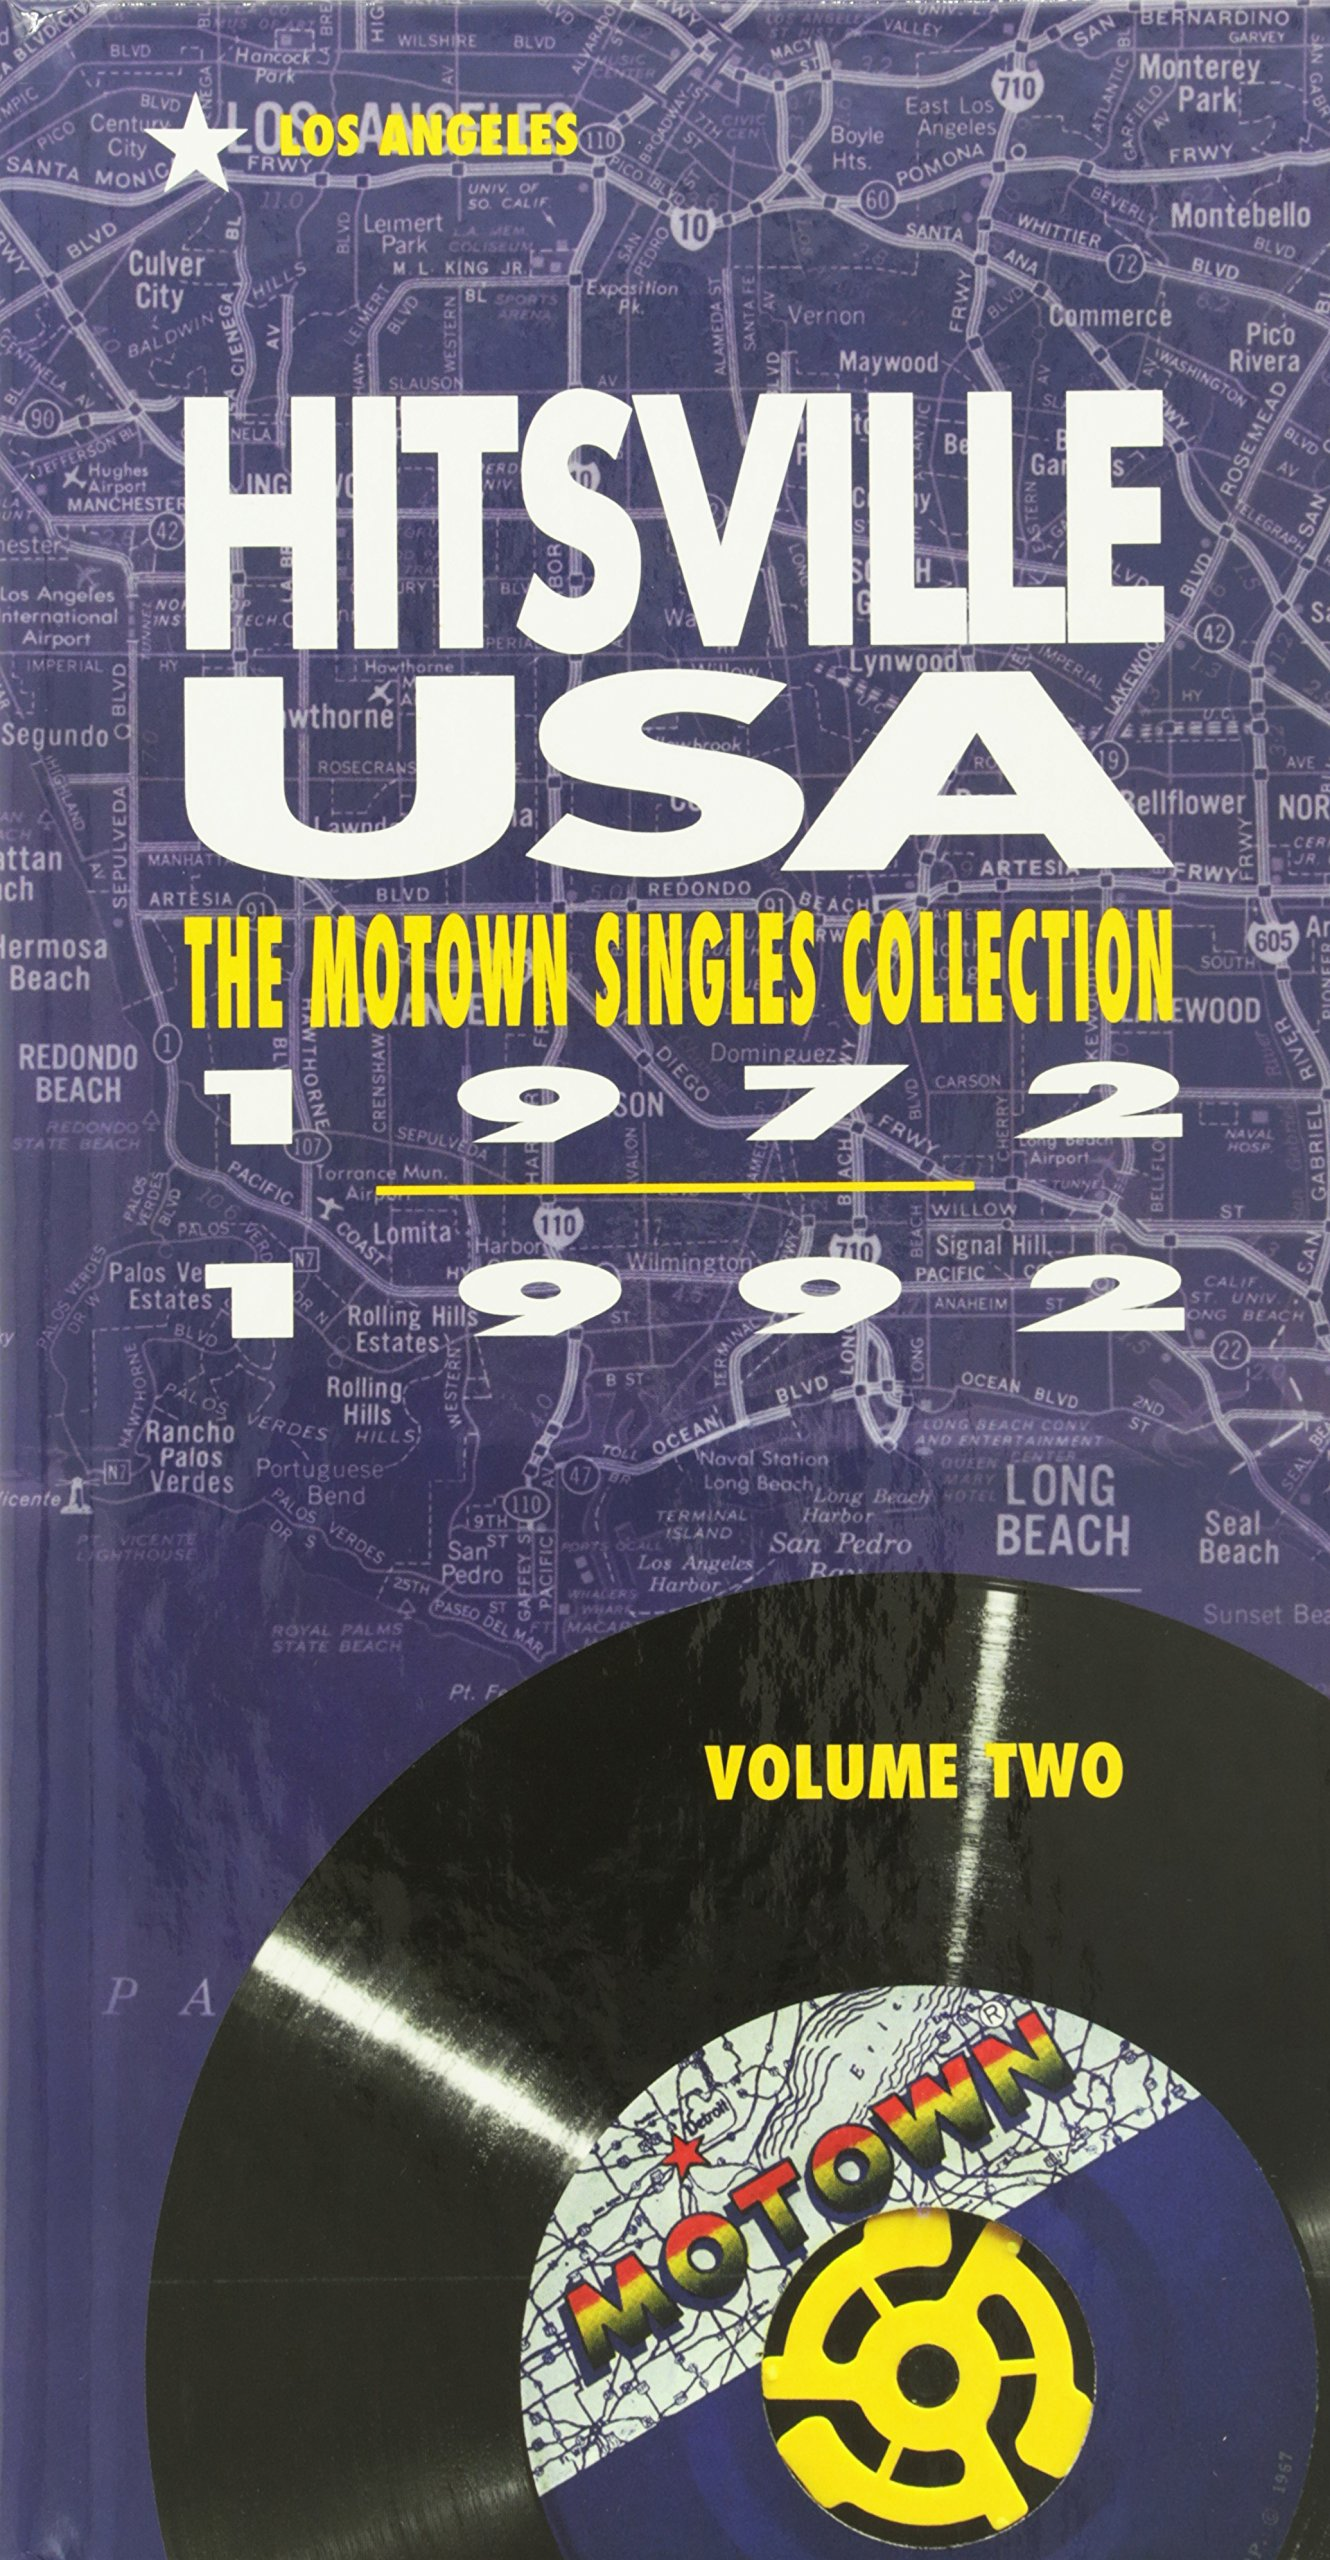 Hitsville USA, Vol. 2: The Motown Singles Collection 1972-1992 by Motown